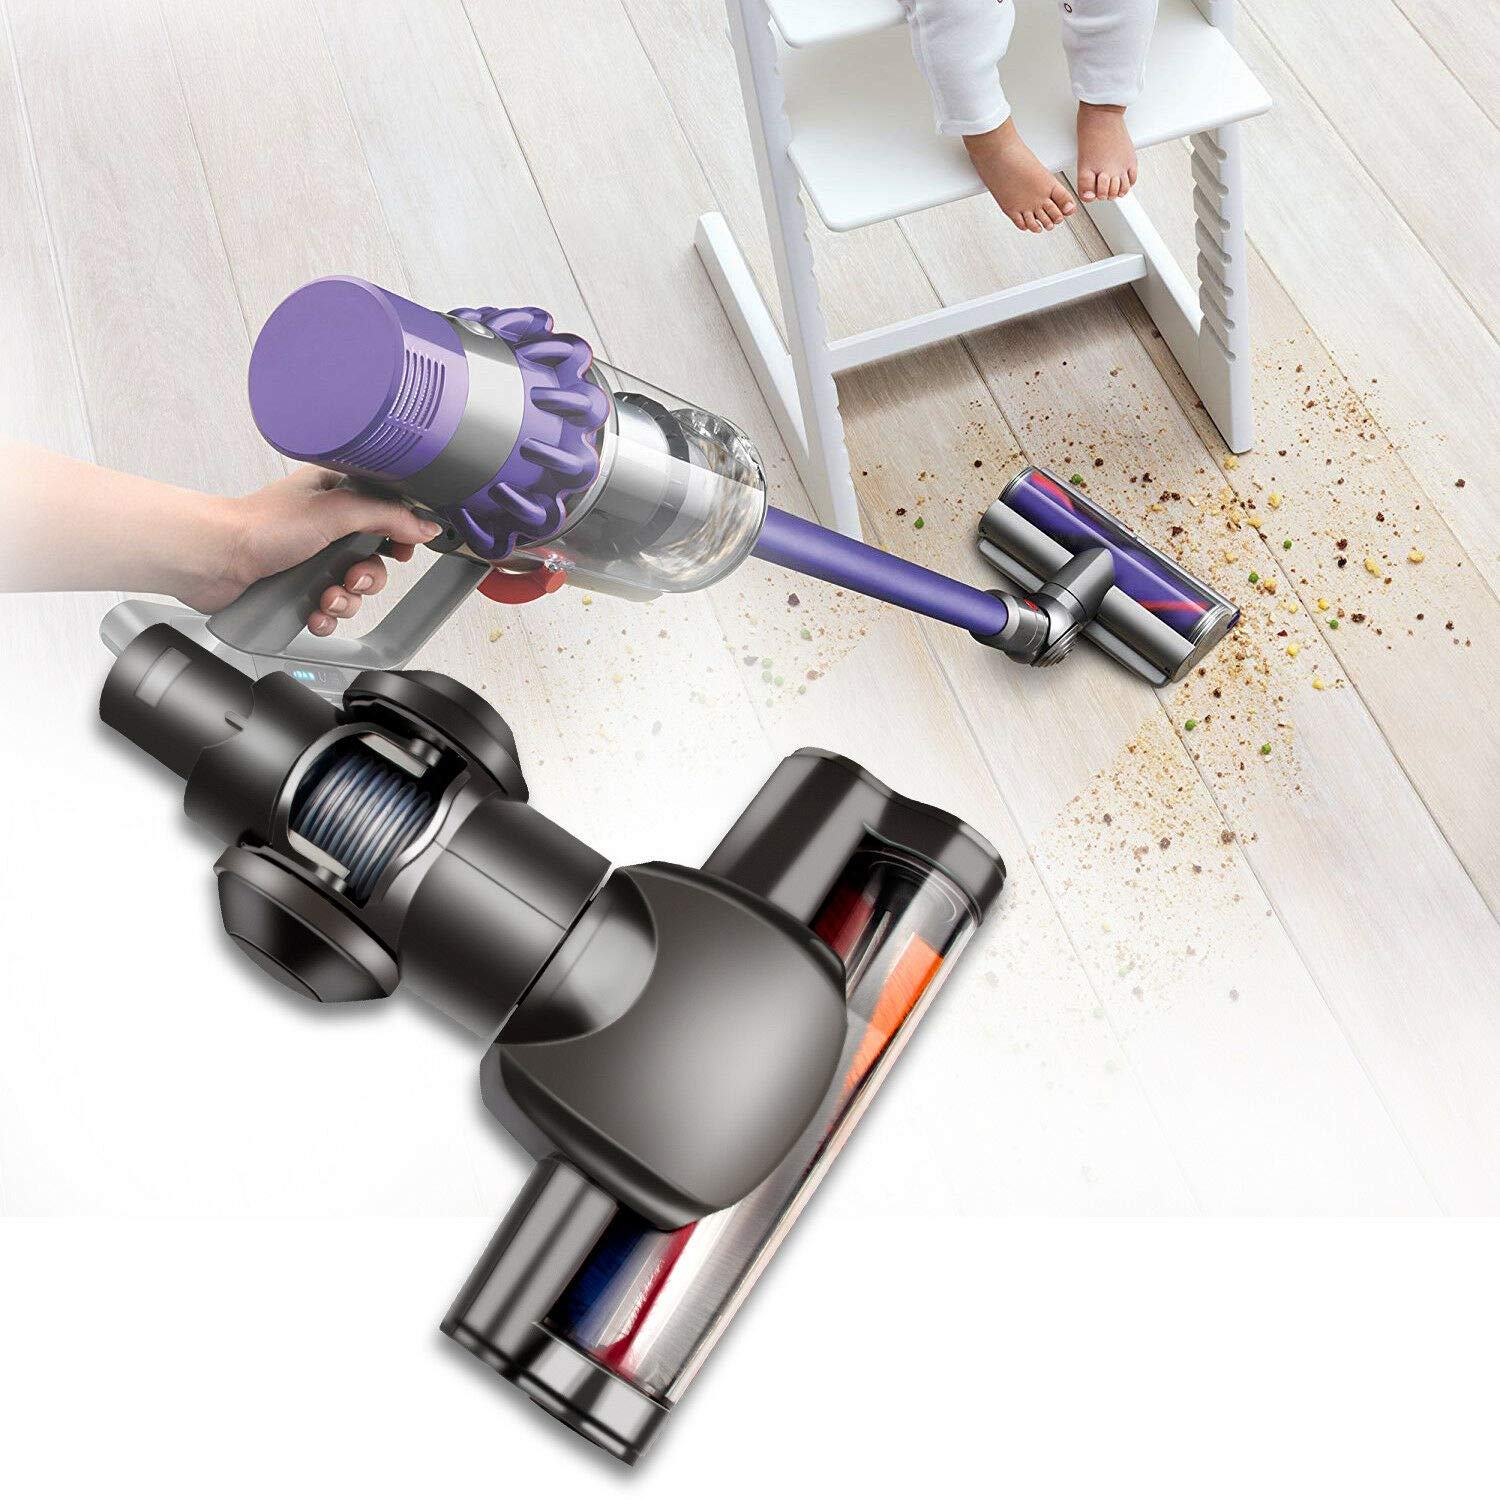 Lovely999 Motorized Floor Head Brush for Dyson DC45 DC58 V6 DC62 DC61 Vacuum Cleaner Longer Performance, Better Filtration.The Inner Brush can be Removed and Clean